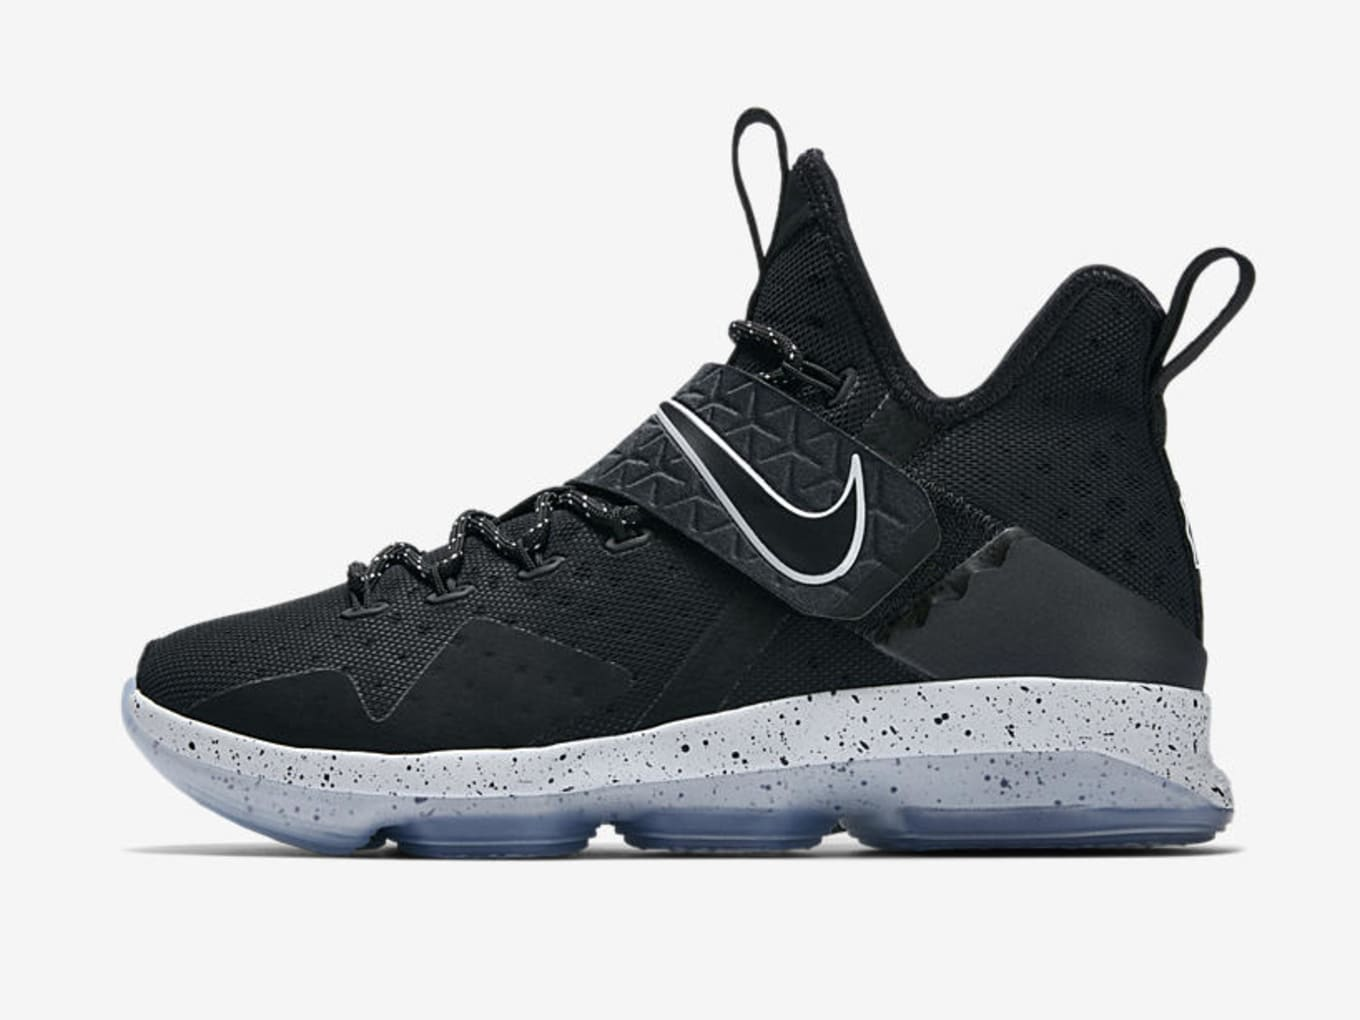 414687f1311 Inside the Nike LeBron 14